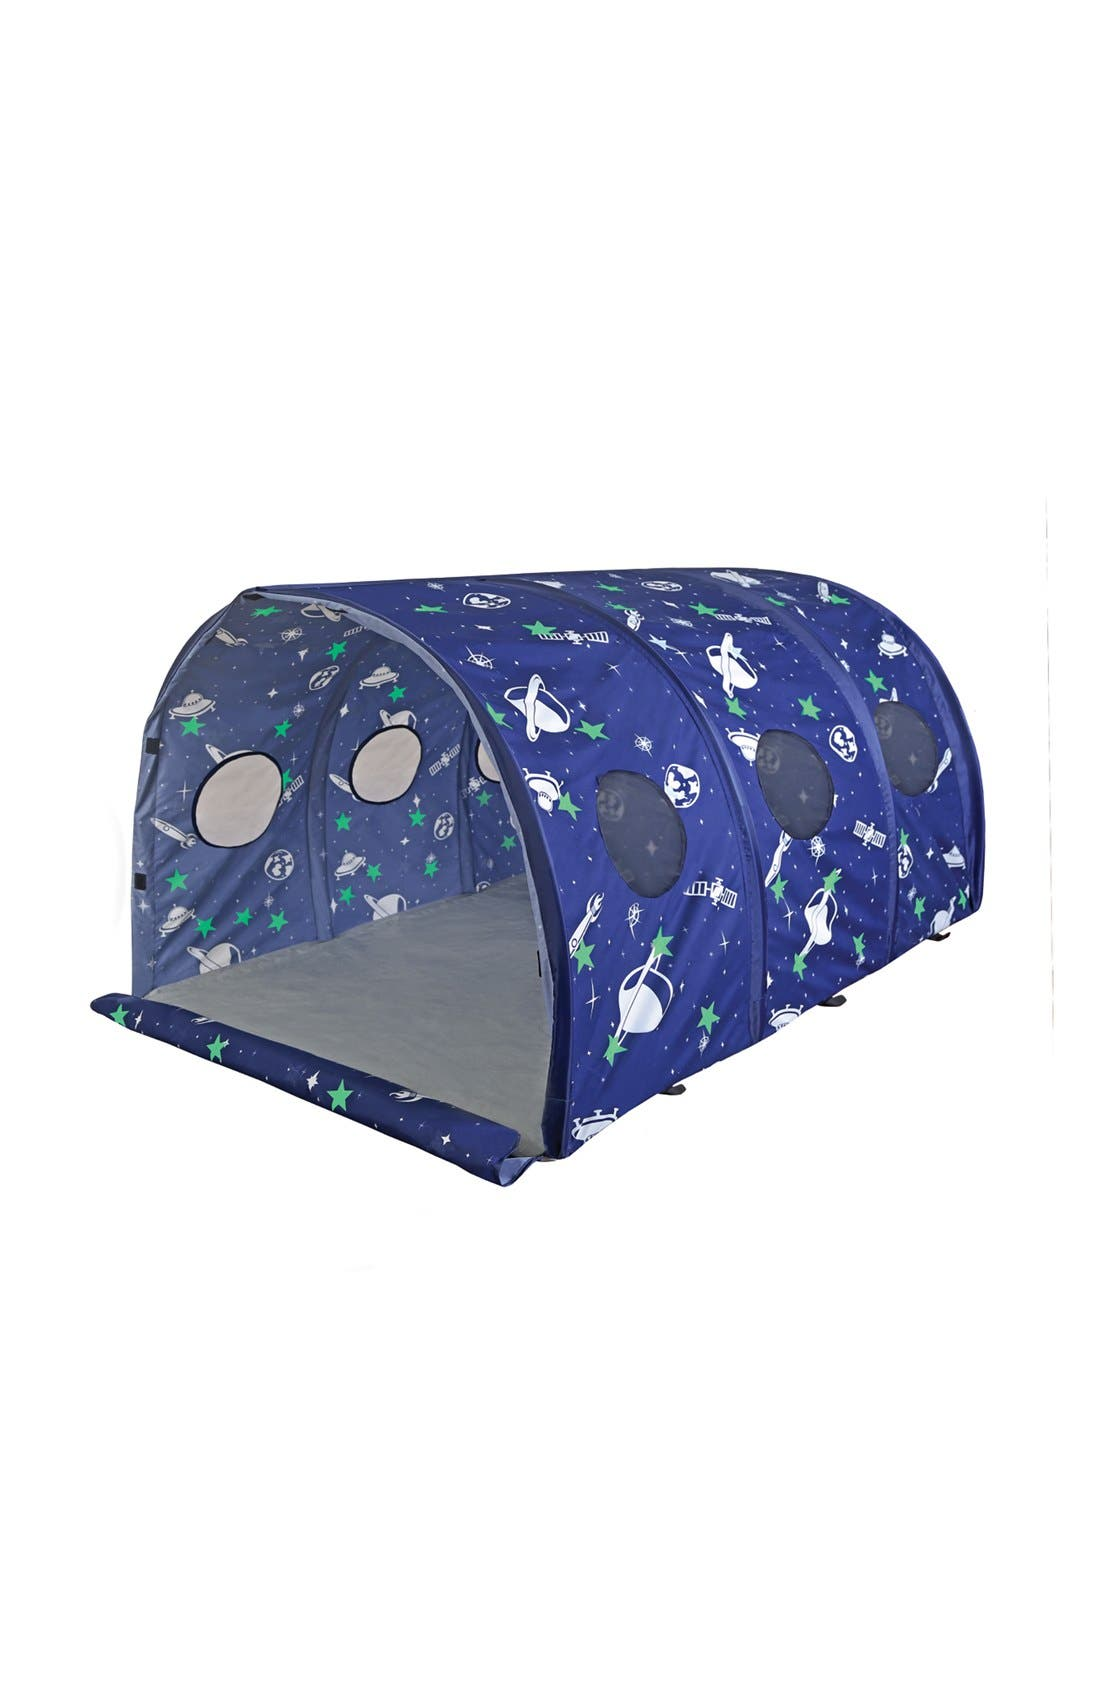 Pacific Play Tents 'Space Capsule' Glow in the Dark Tent